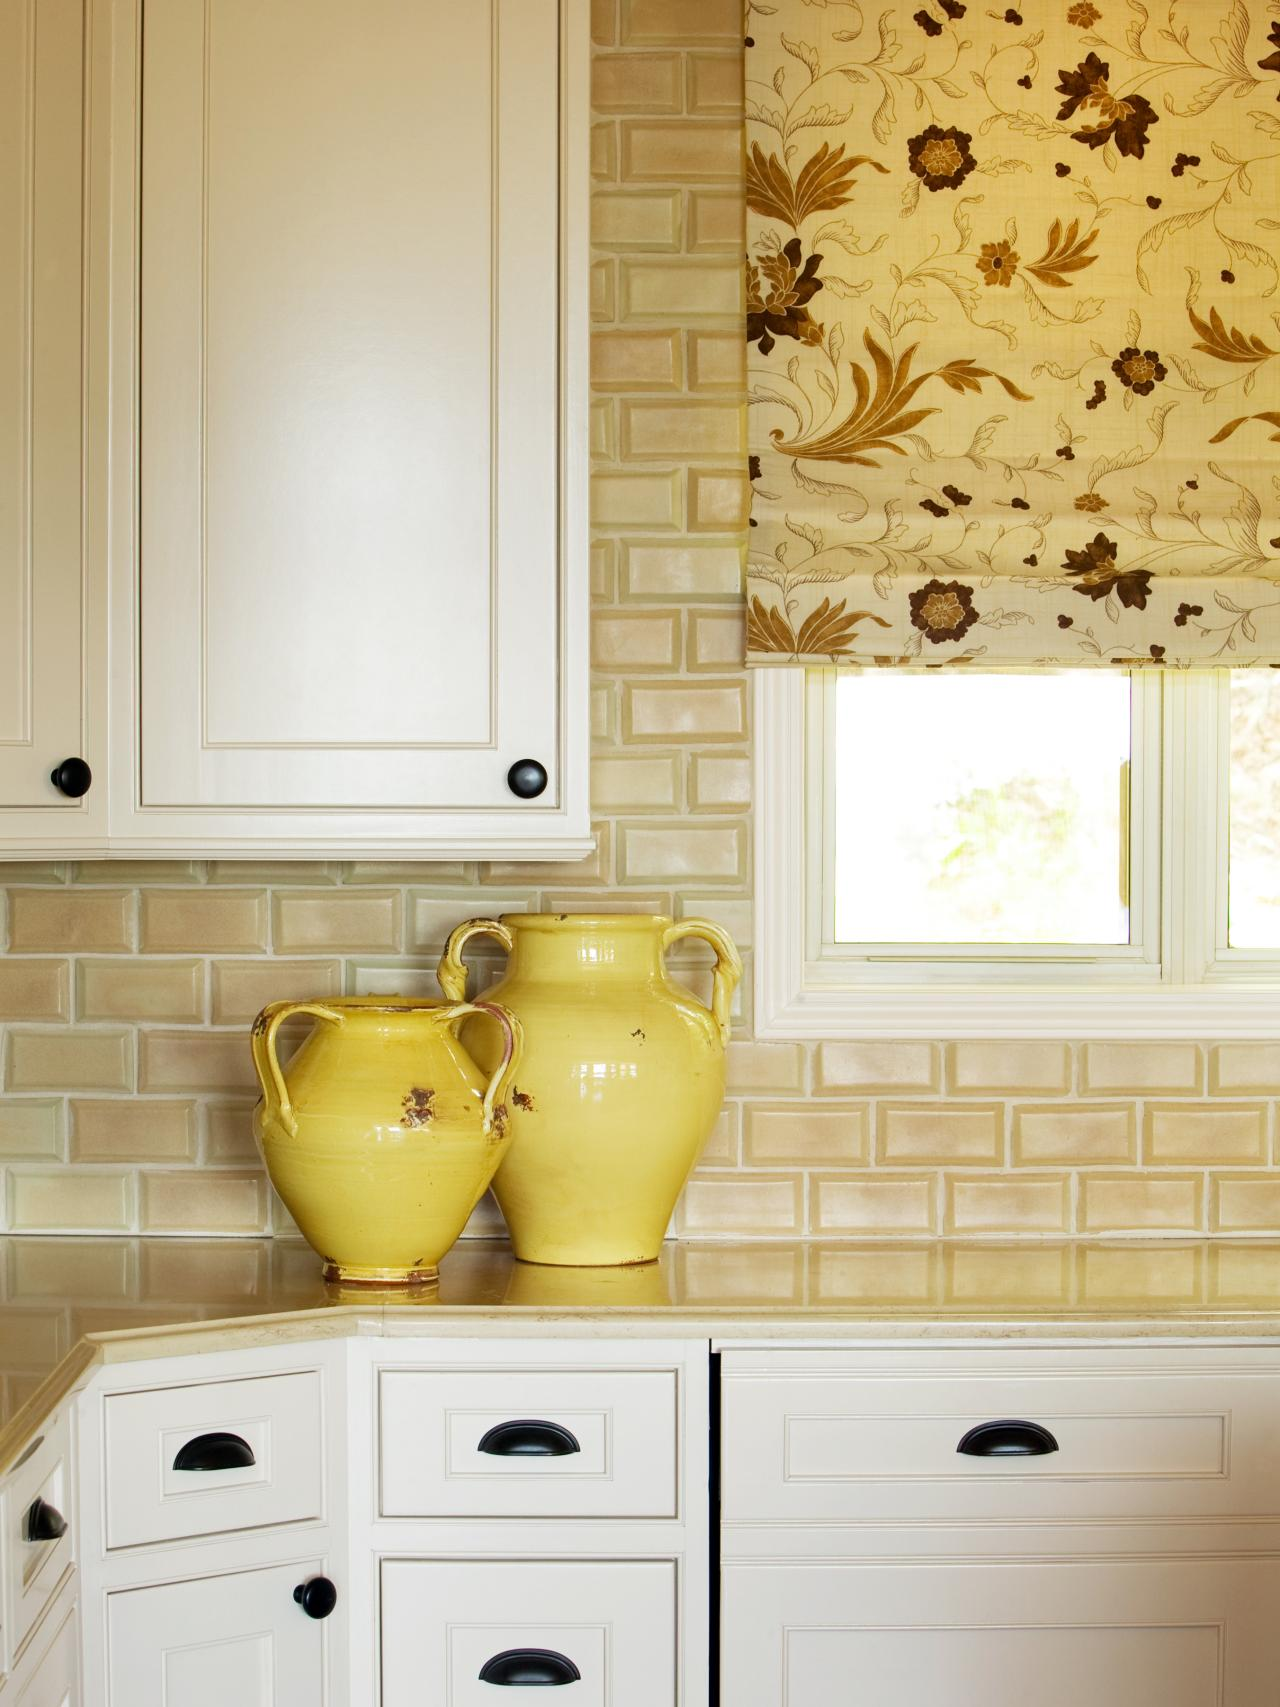 Subway tile backsplashes hgtv extended design dailygadgetfo Image collections